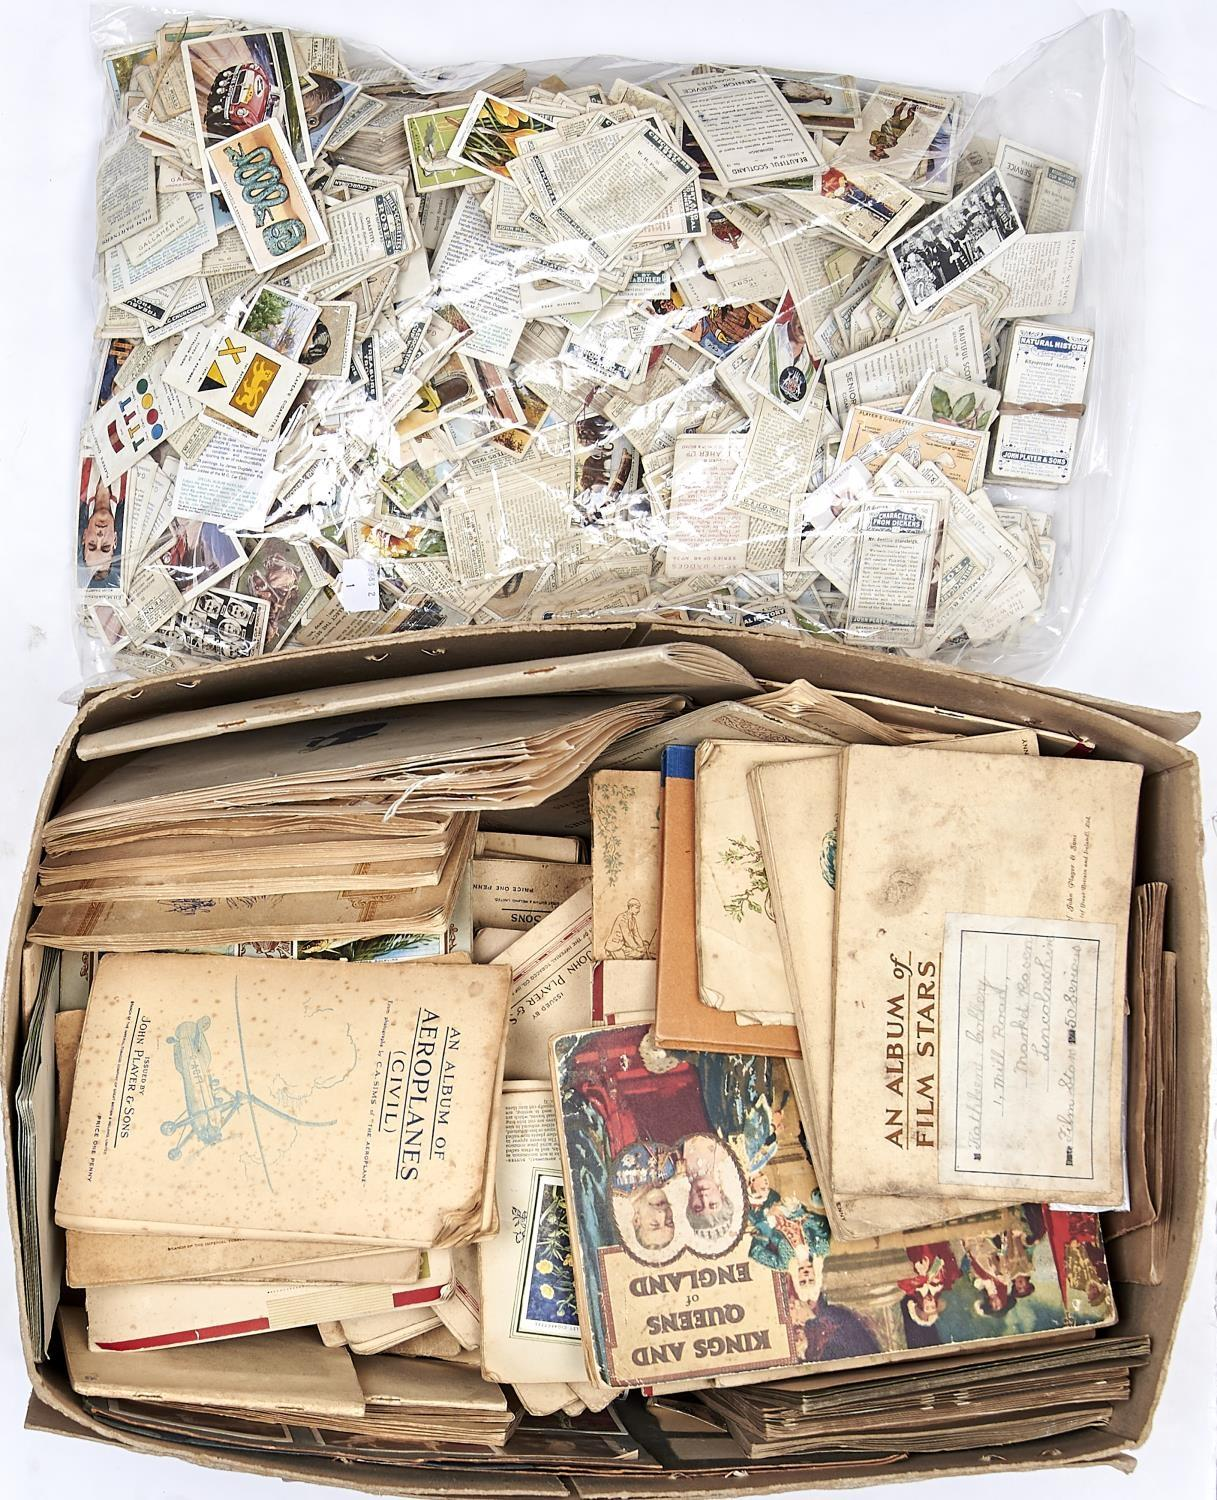 AN EXTENSIVE COLLECTION OF CIGARETTE CARDS, TO INCLUDE MULTIPLE ALBUMS WITH CARDS ATTACHED WITH